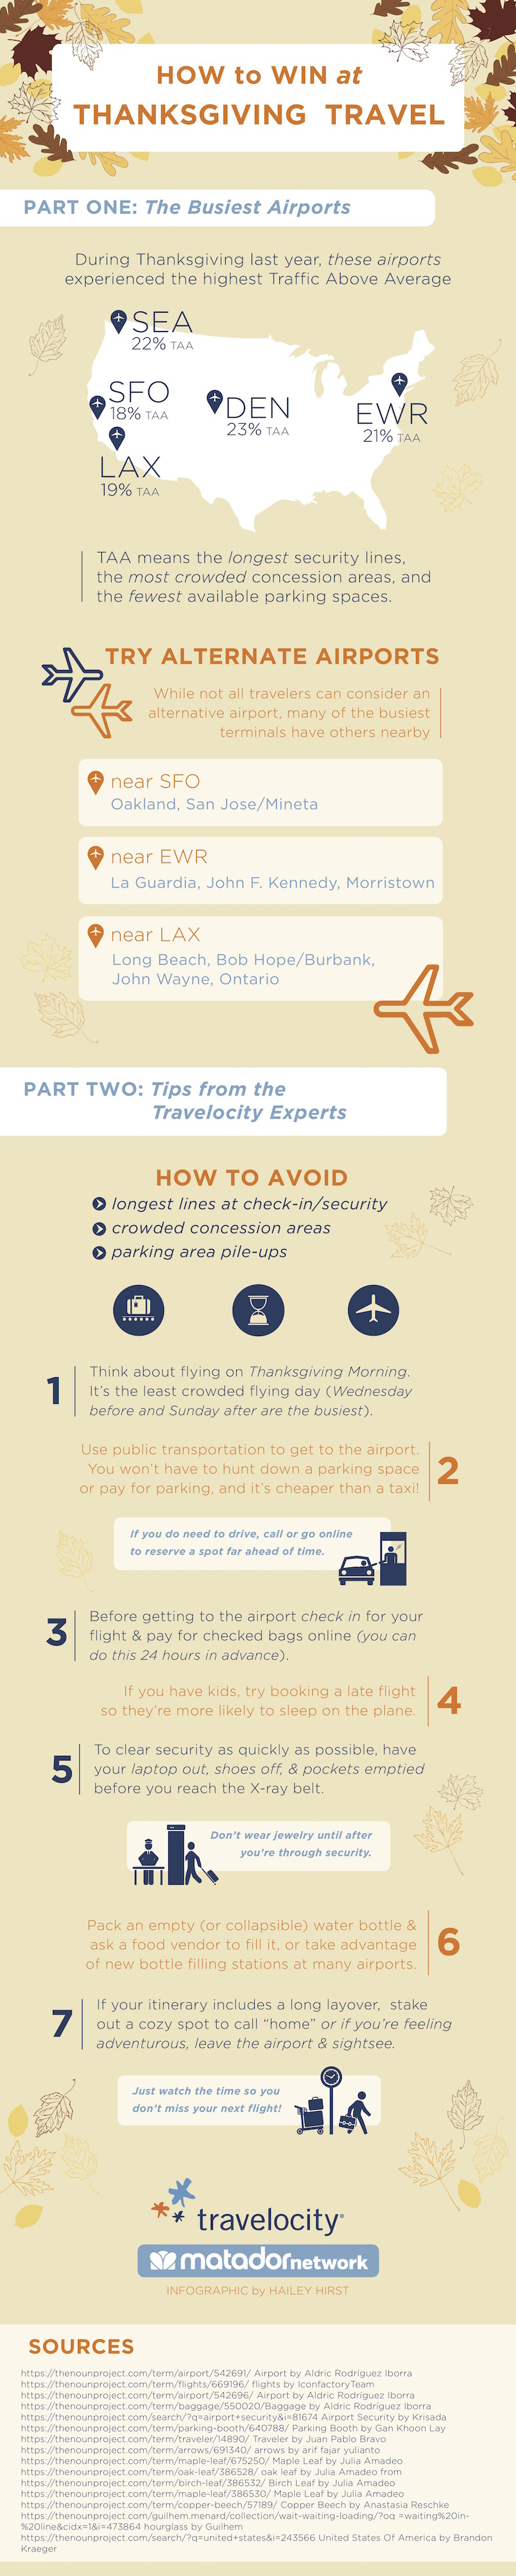 How to Win at Thanksgiving Travel -   Matador Network & Travelocity